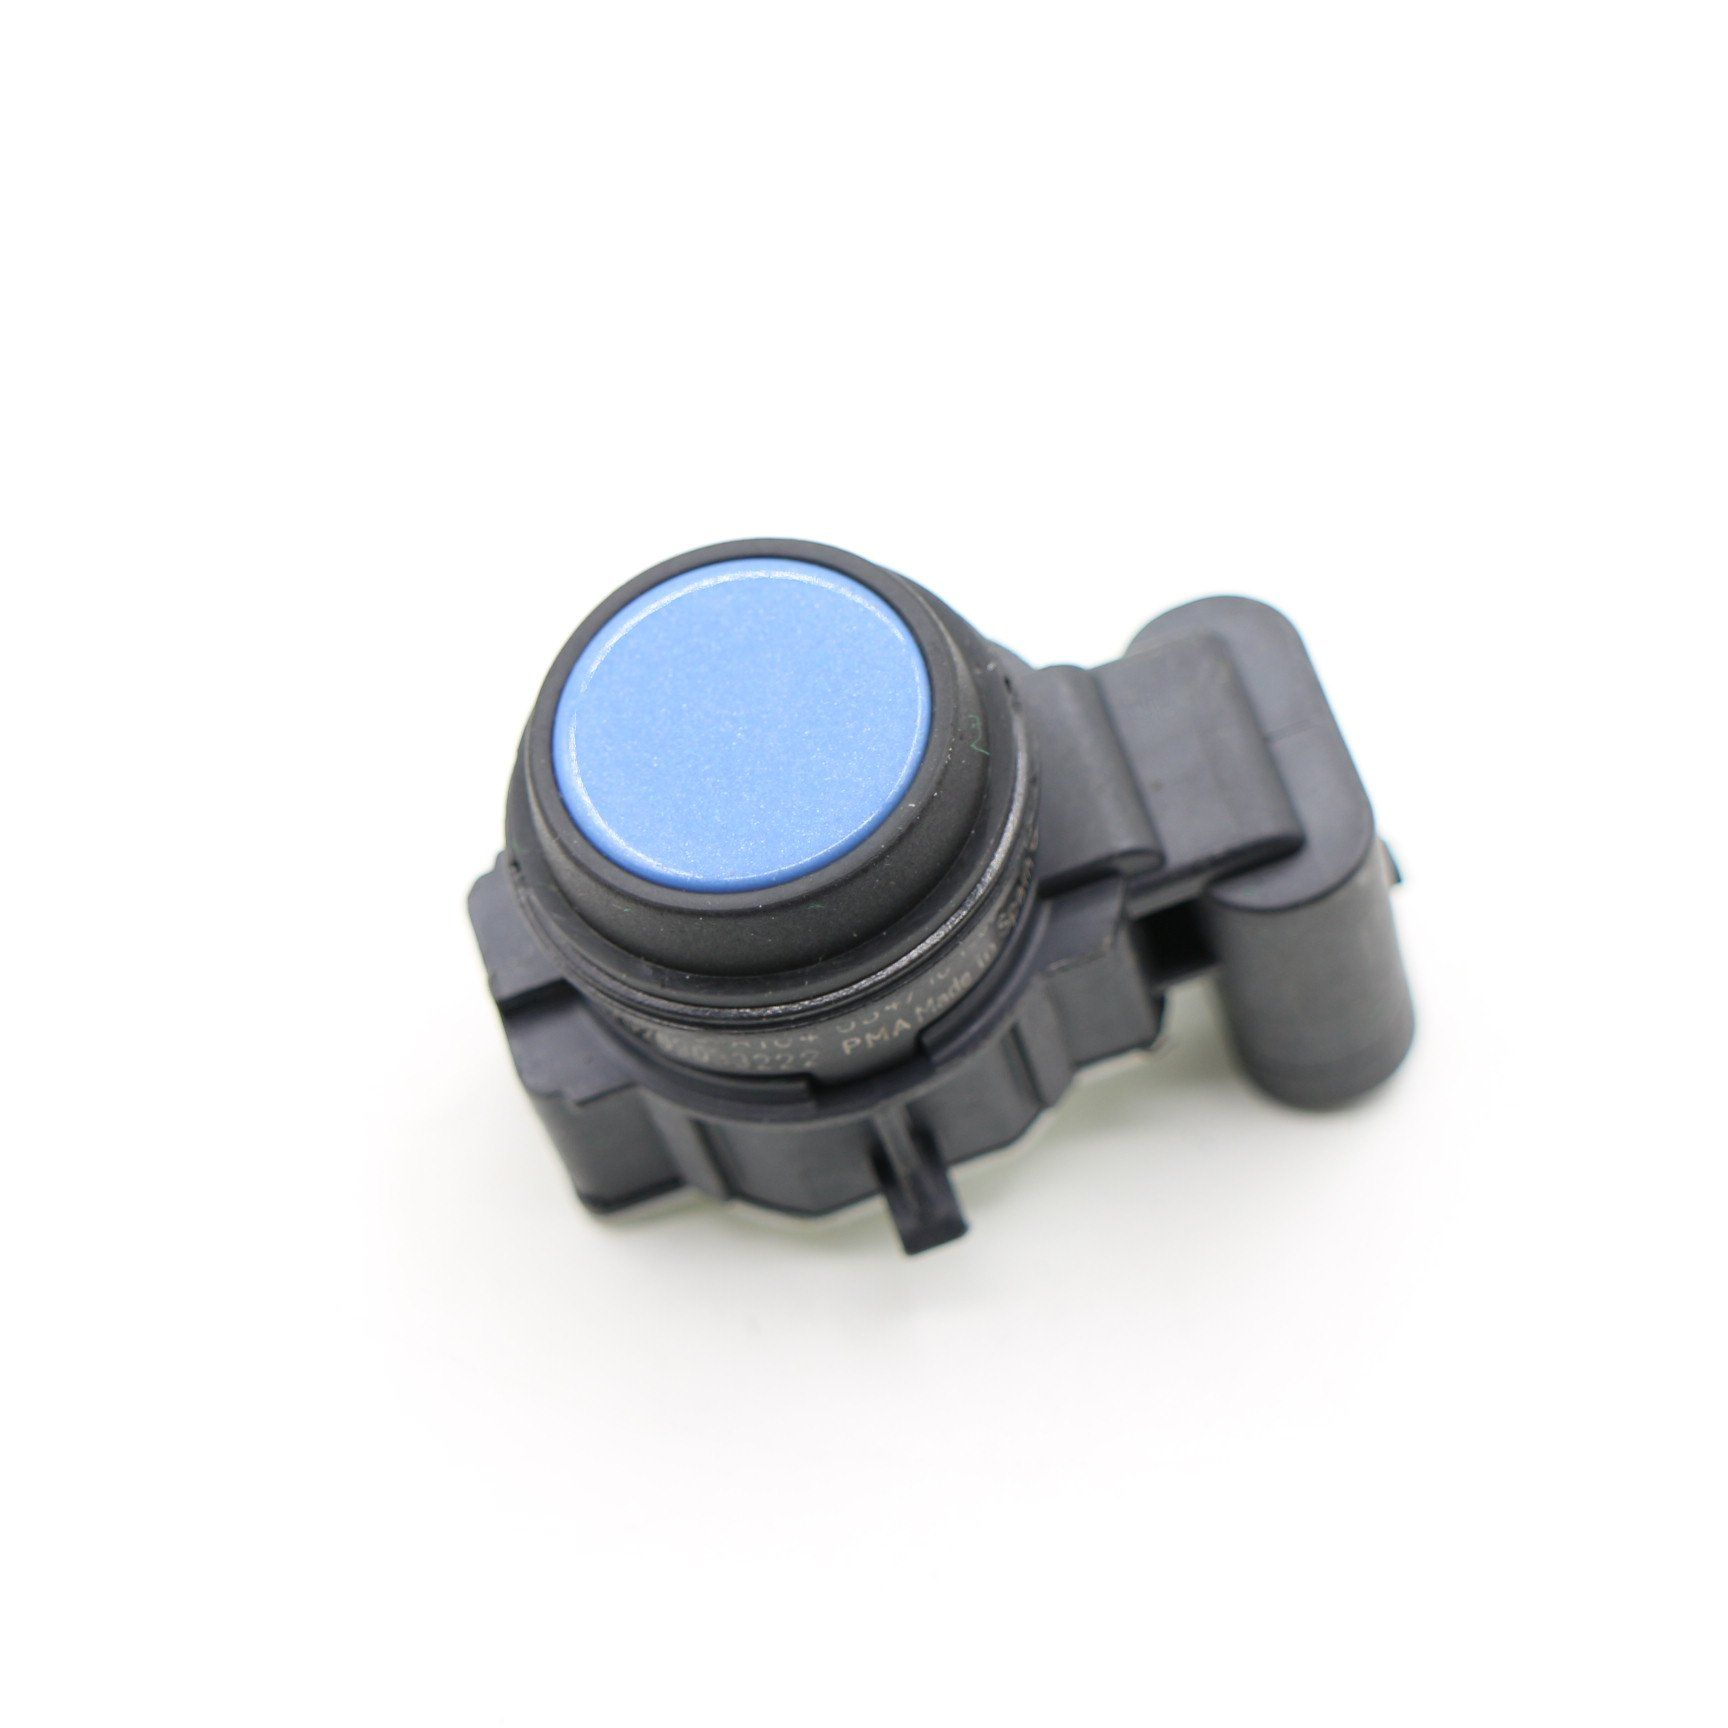 0263033222 9317889 66209317889 Parking Sensor PDC Sensor For BMW -- Awesome products selected by Anna Churchill